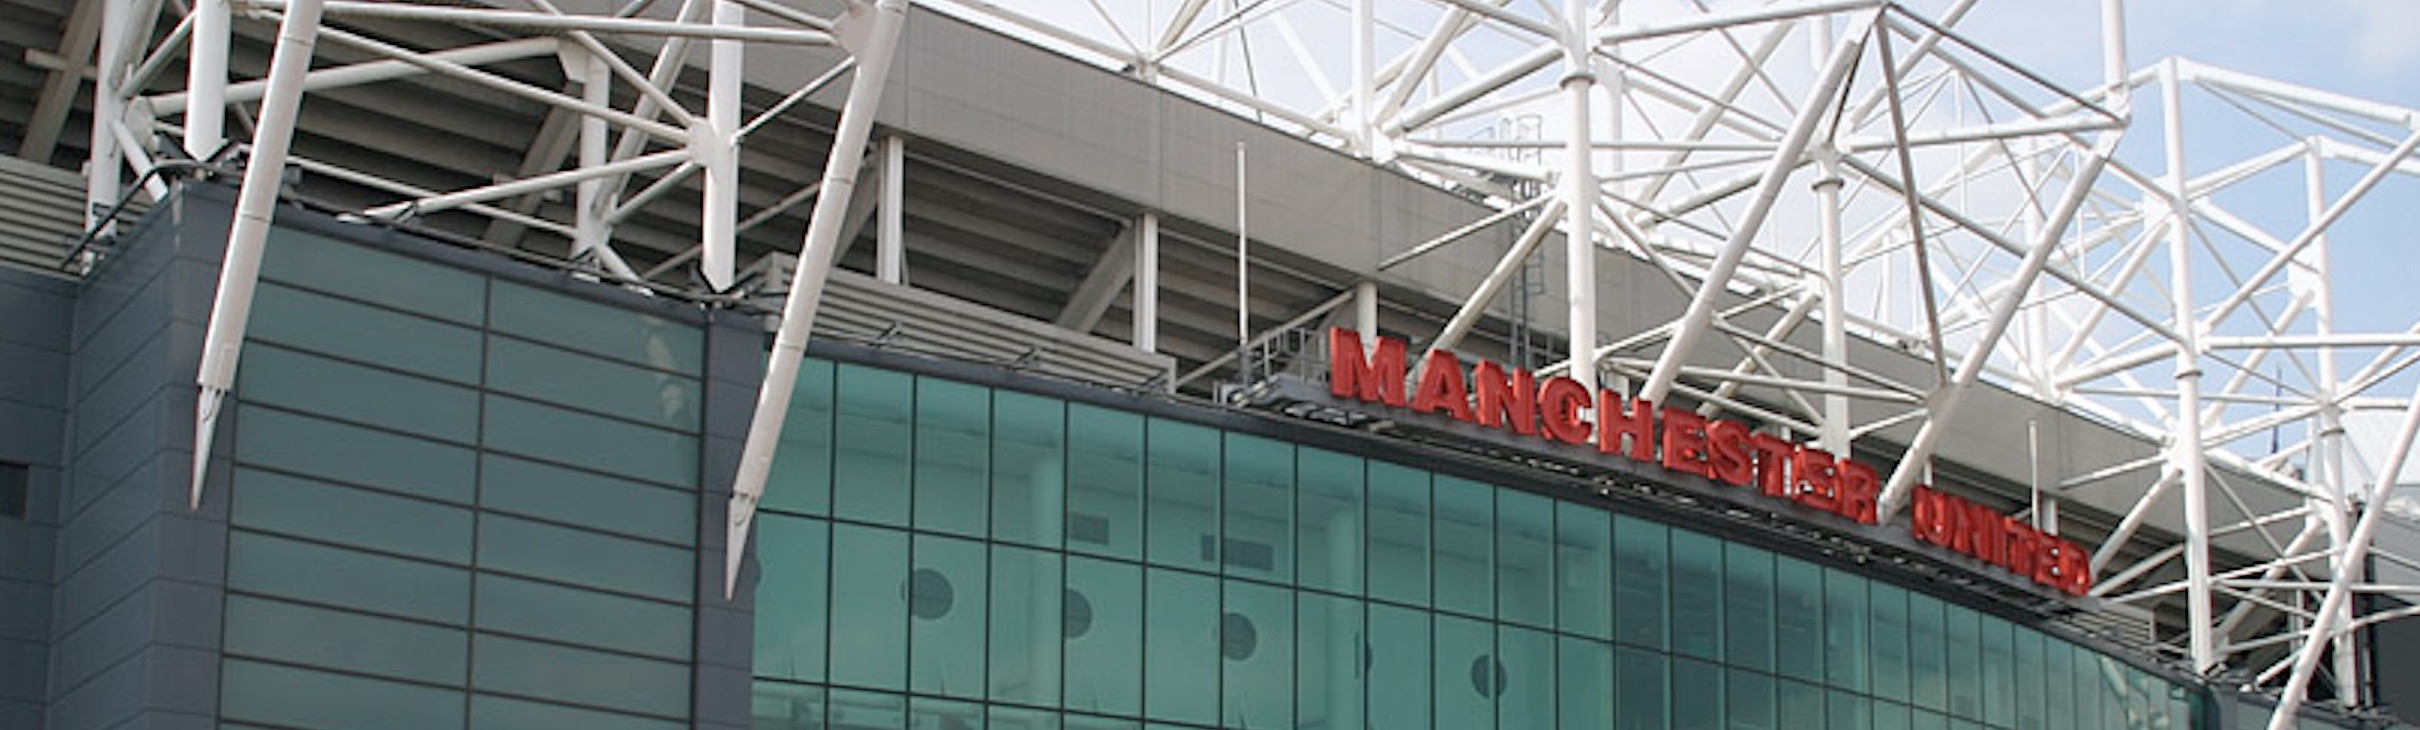 Man United V Brighton - Daytrip by Coach & Ferry